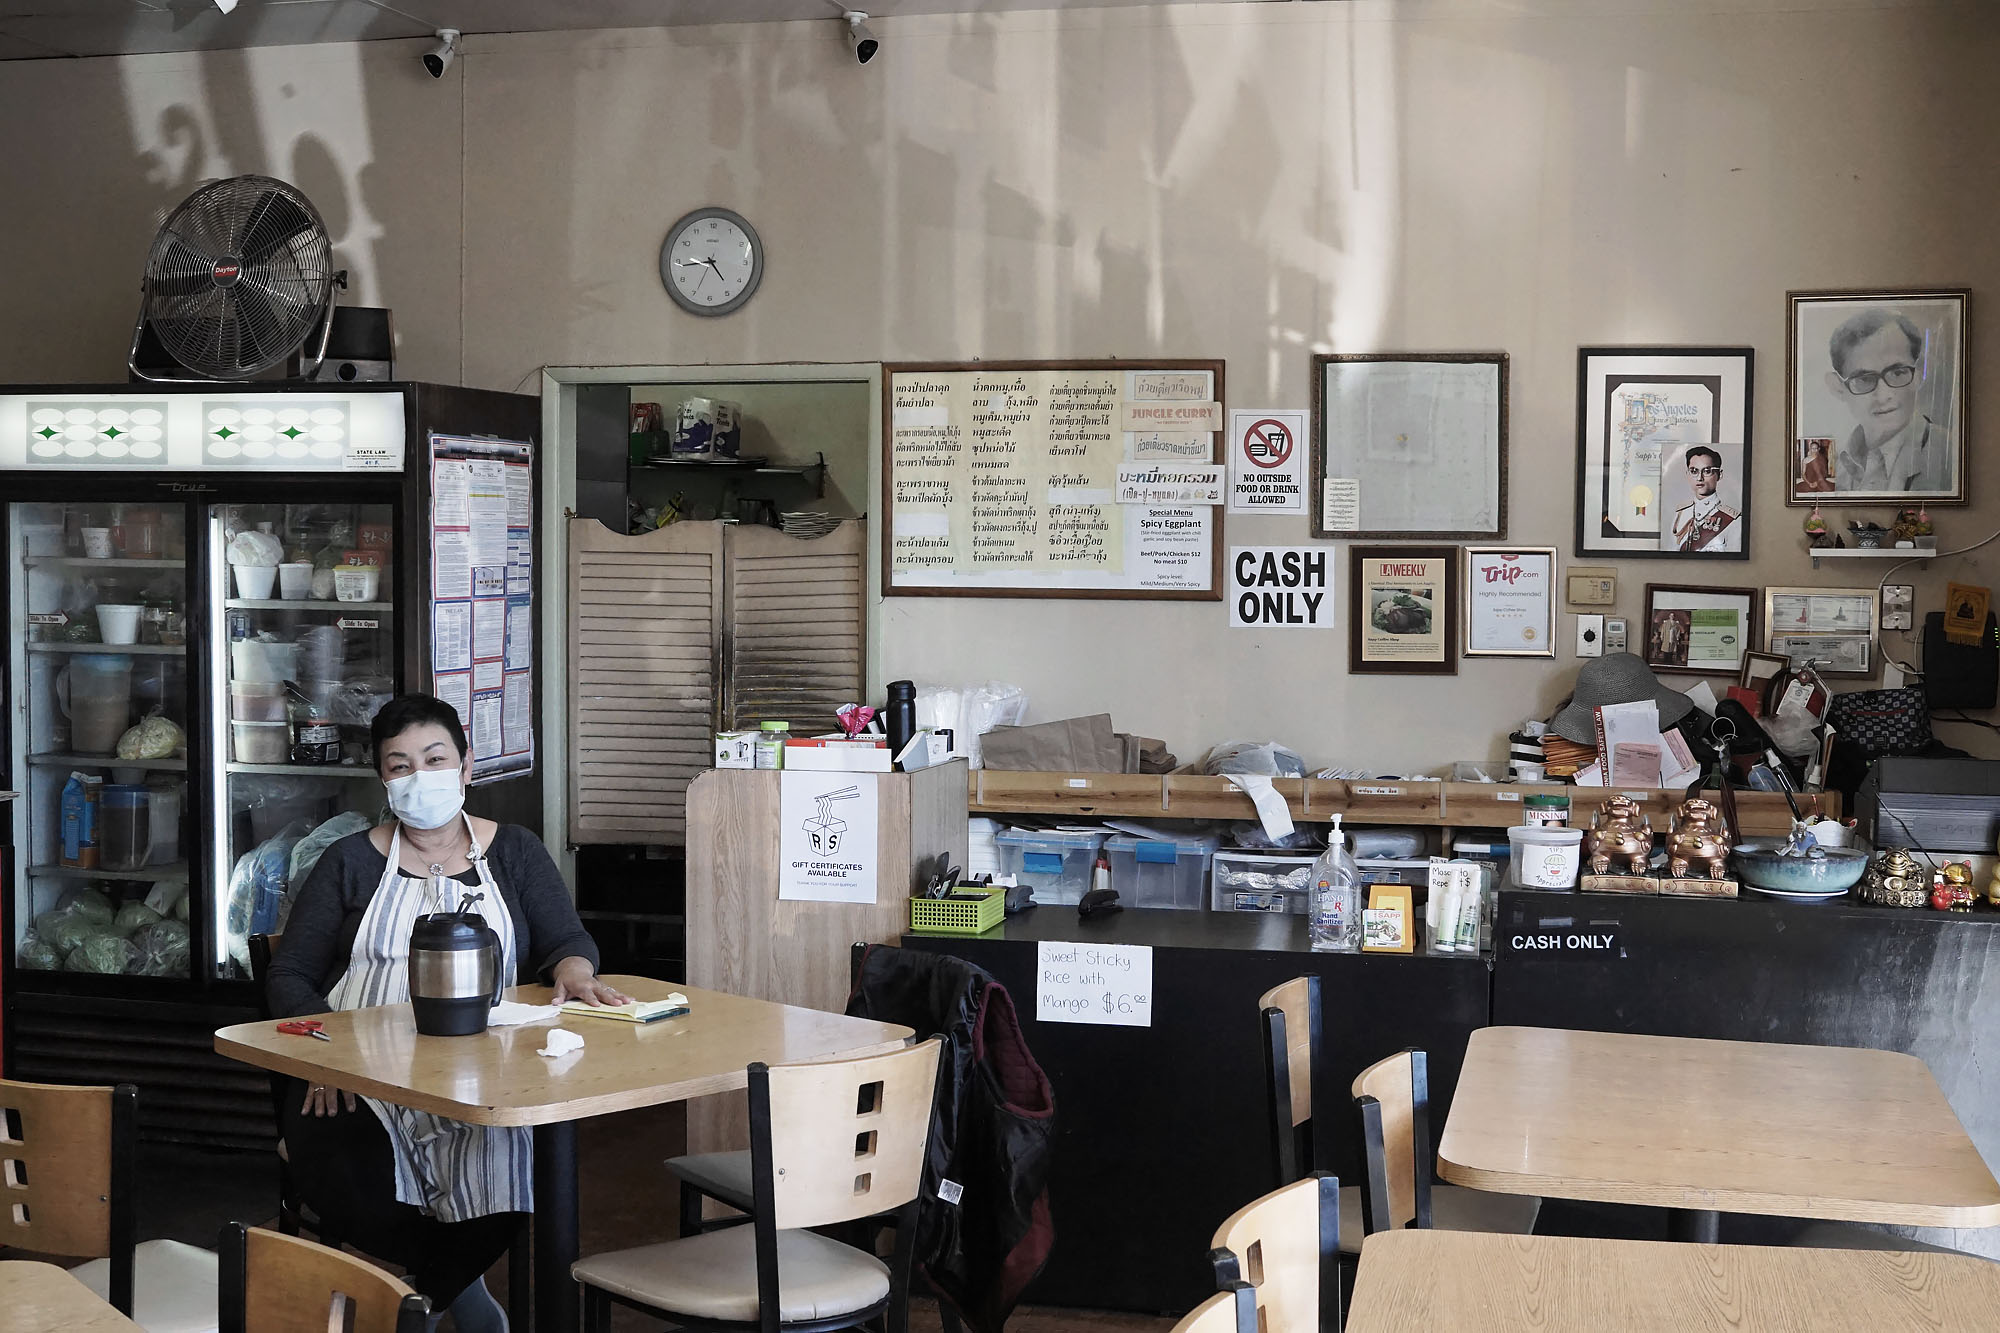 A lone owner sits inside of a restaurant wearing a mask during coronavirus.